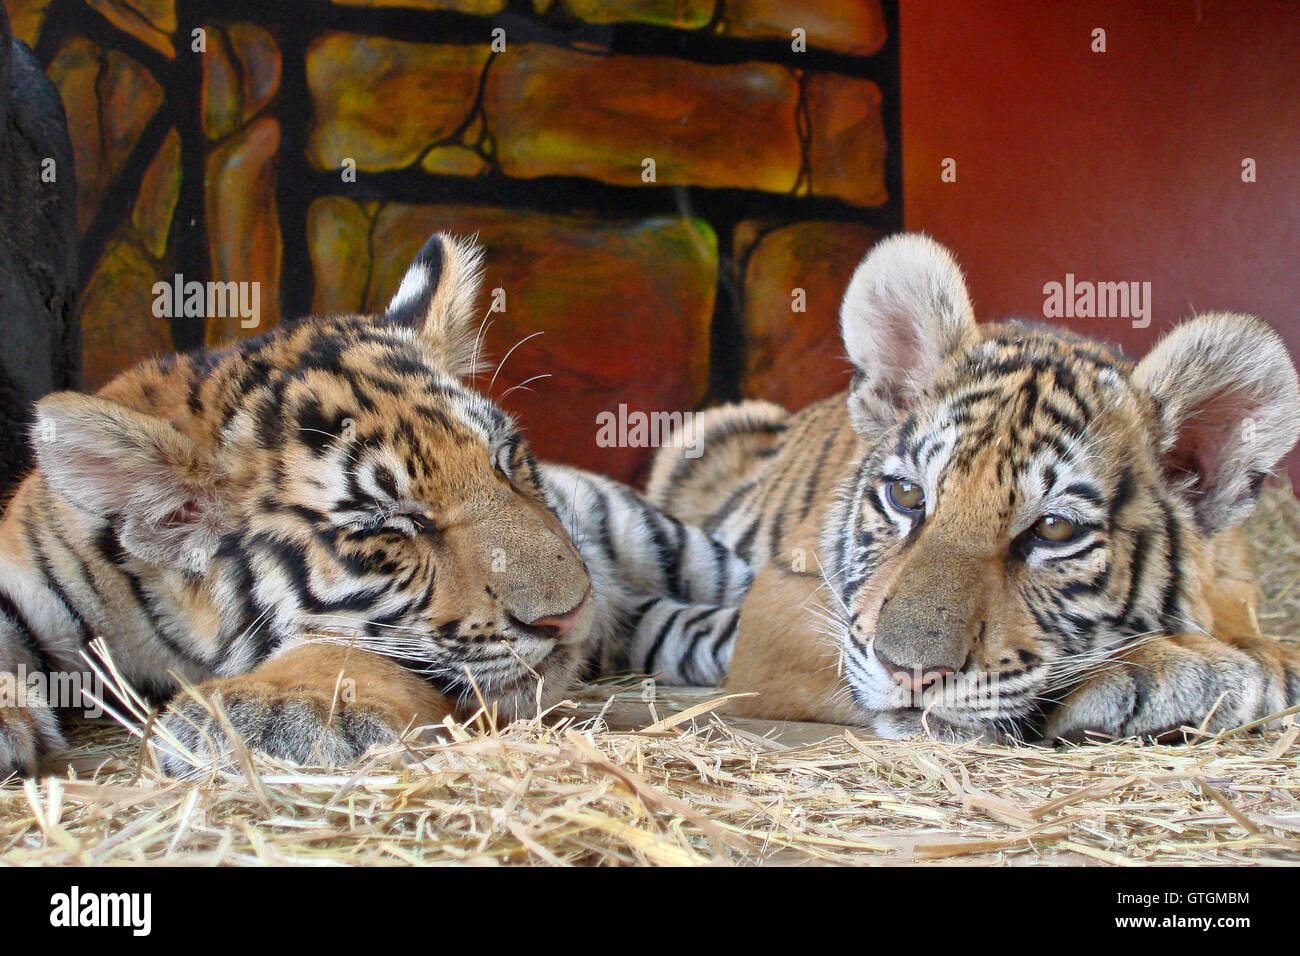 Tiger cubs snoozing - Stock Image